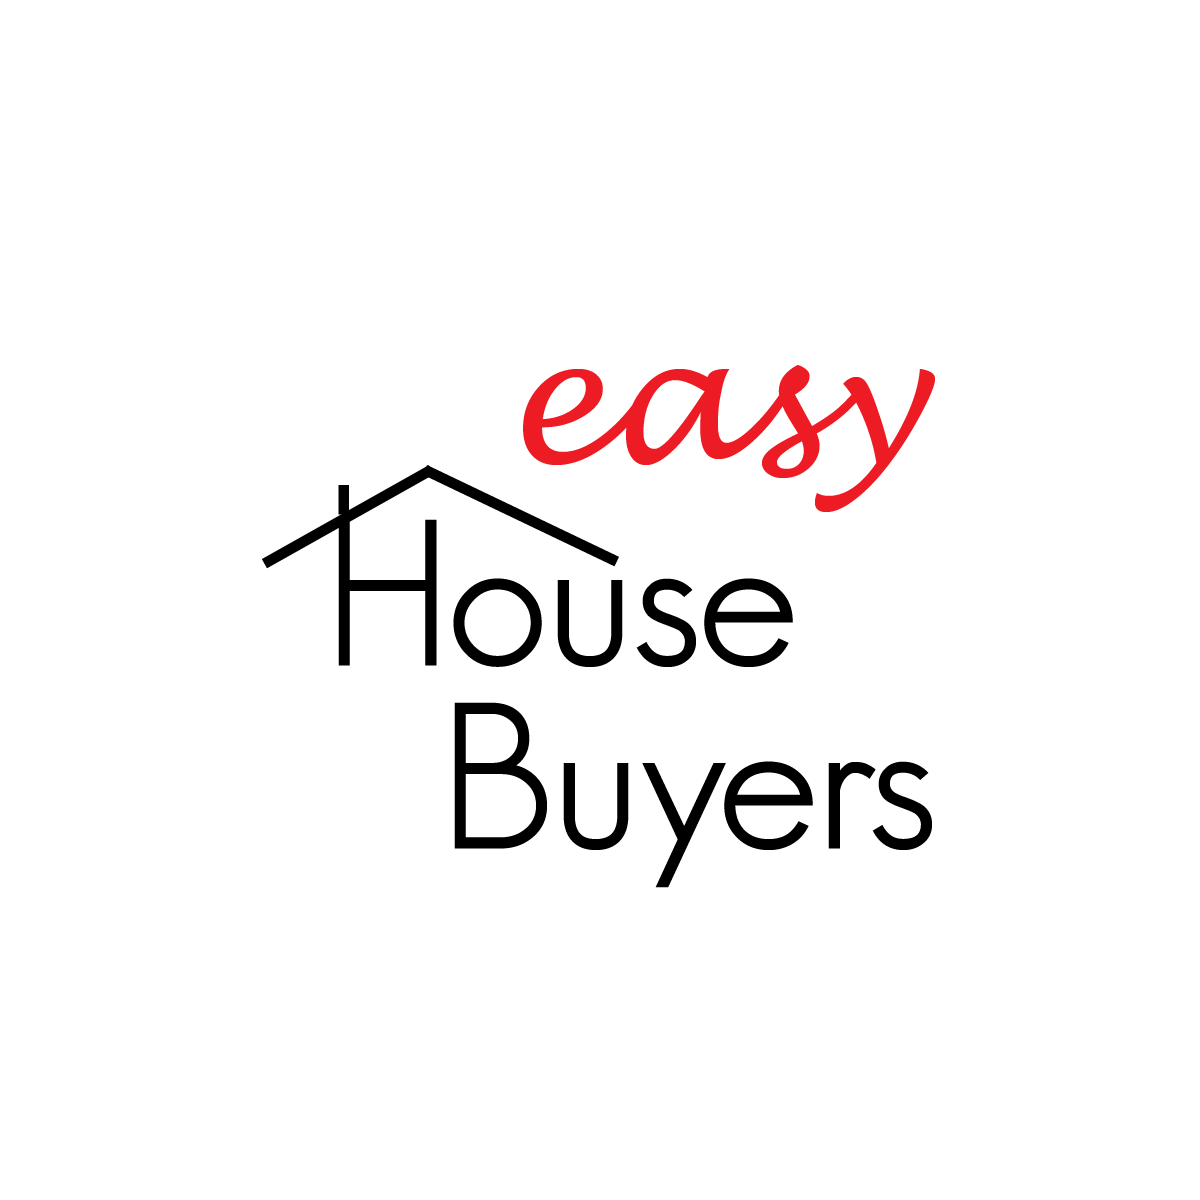 Easy House Buyers